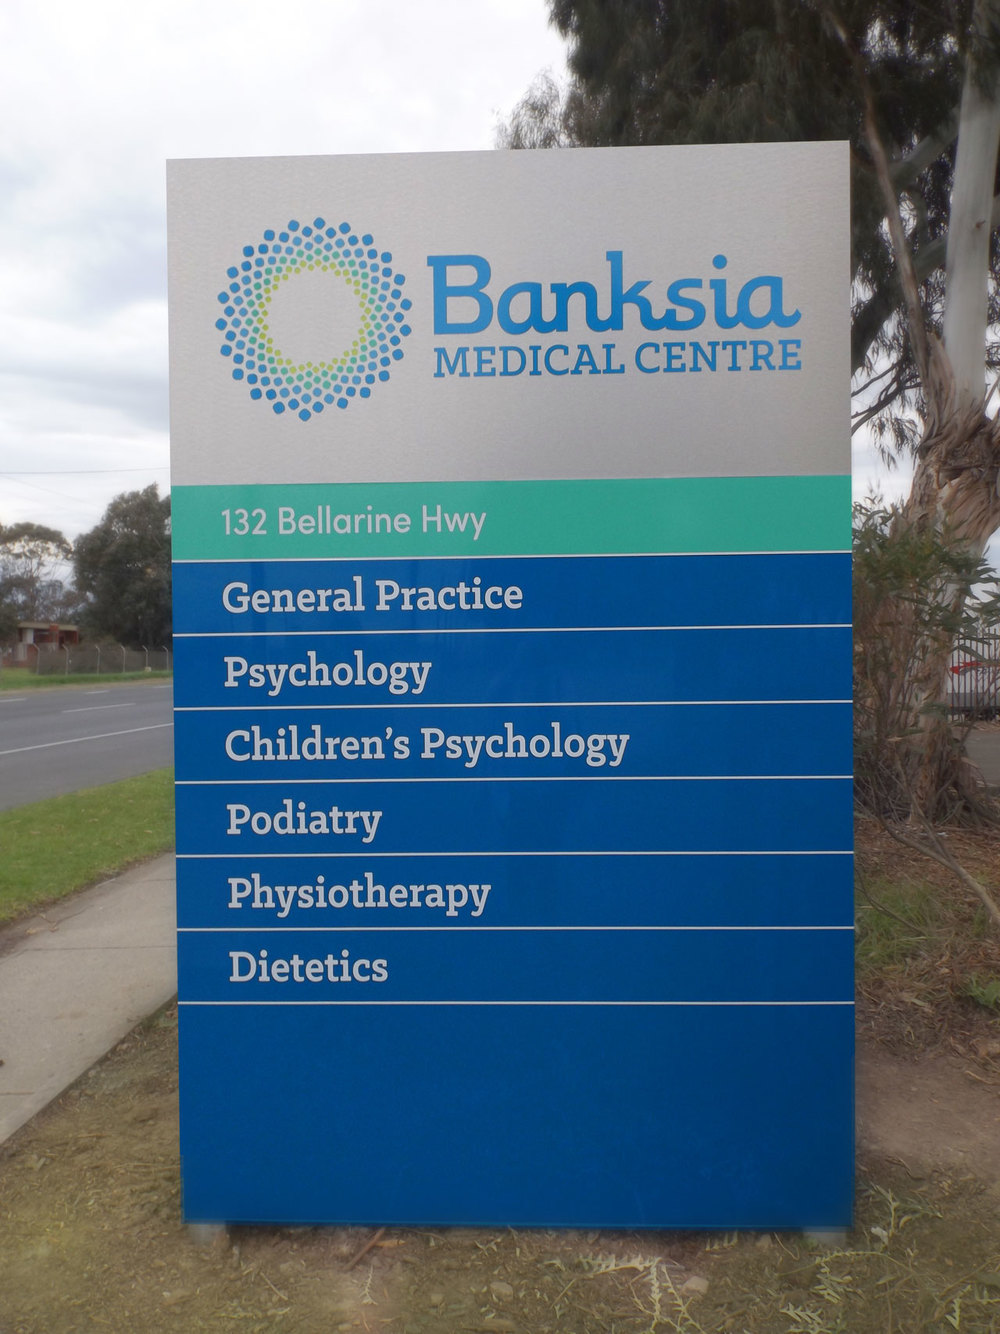 BANKSIA MEDICAL CENTRE - Exterior Signage.  Morrison Design, Graphic Design and Branding Agency Geelong, Melbourne, VIC.